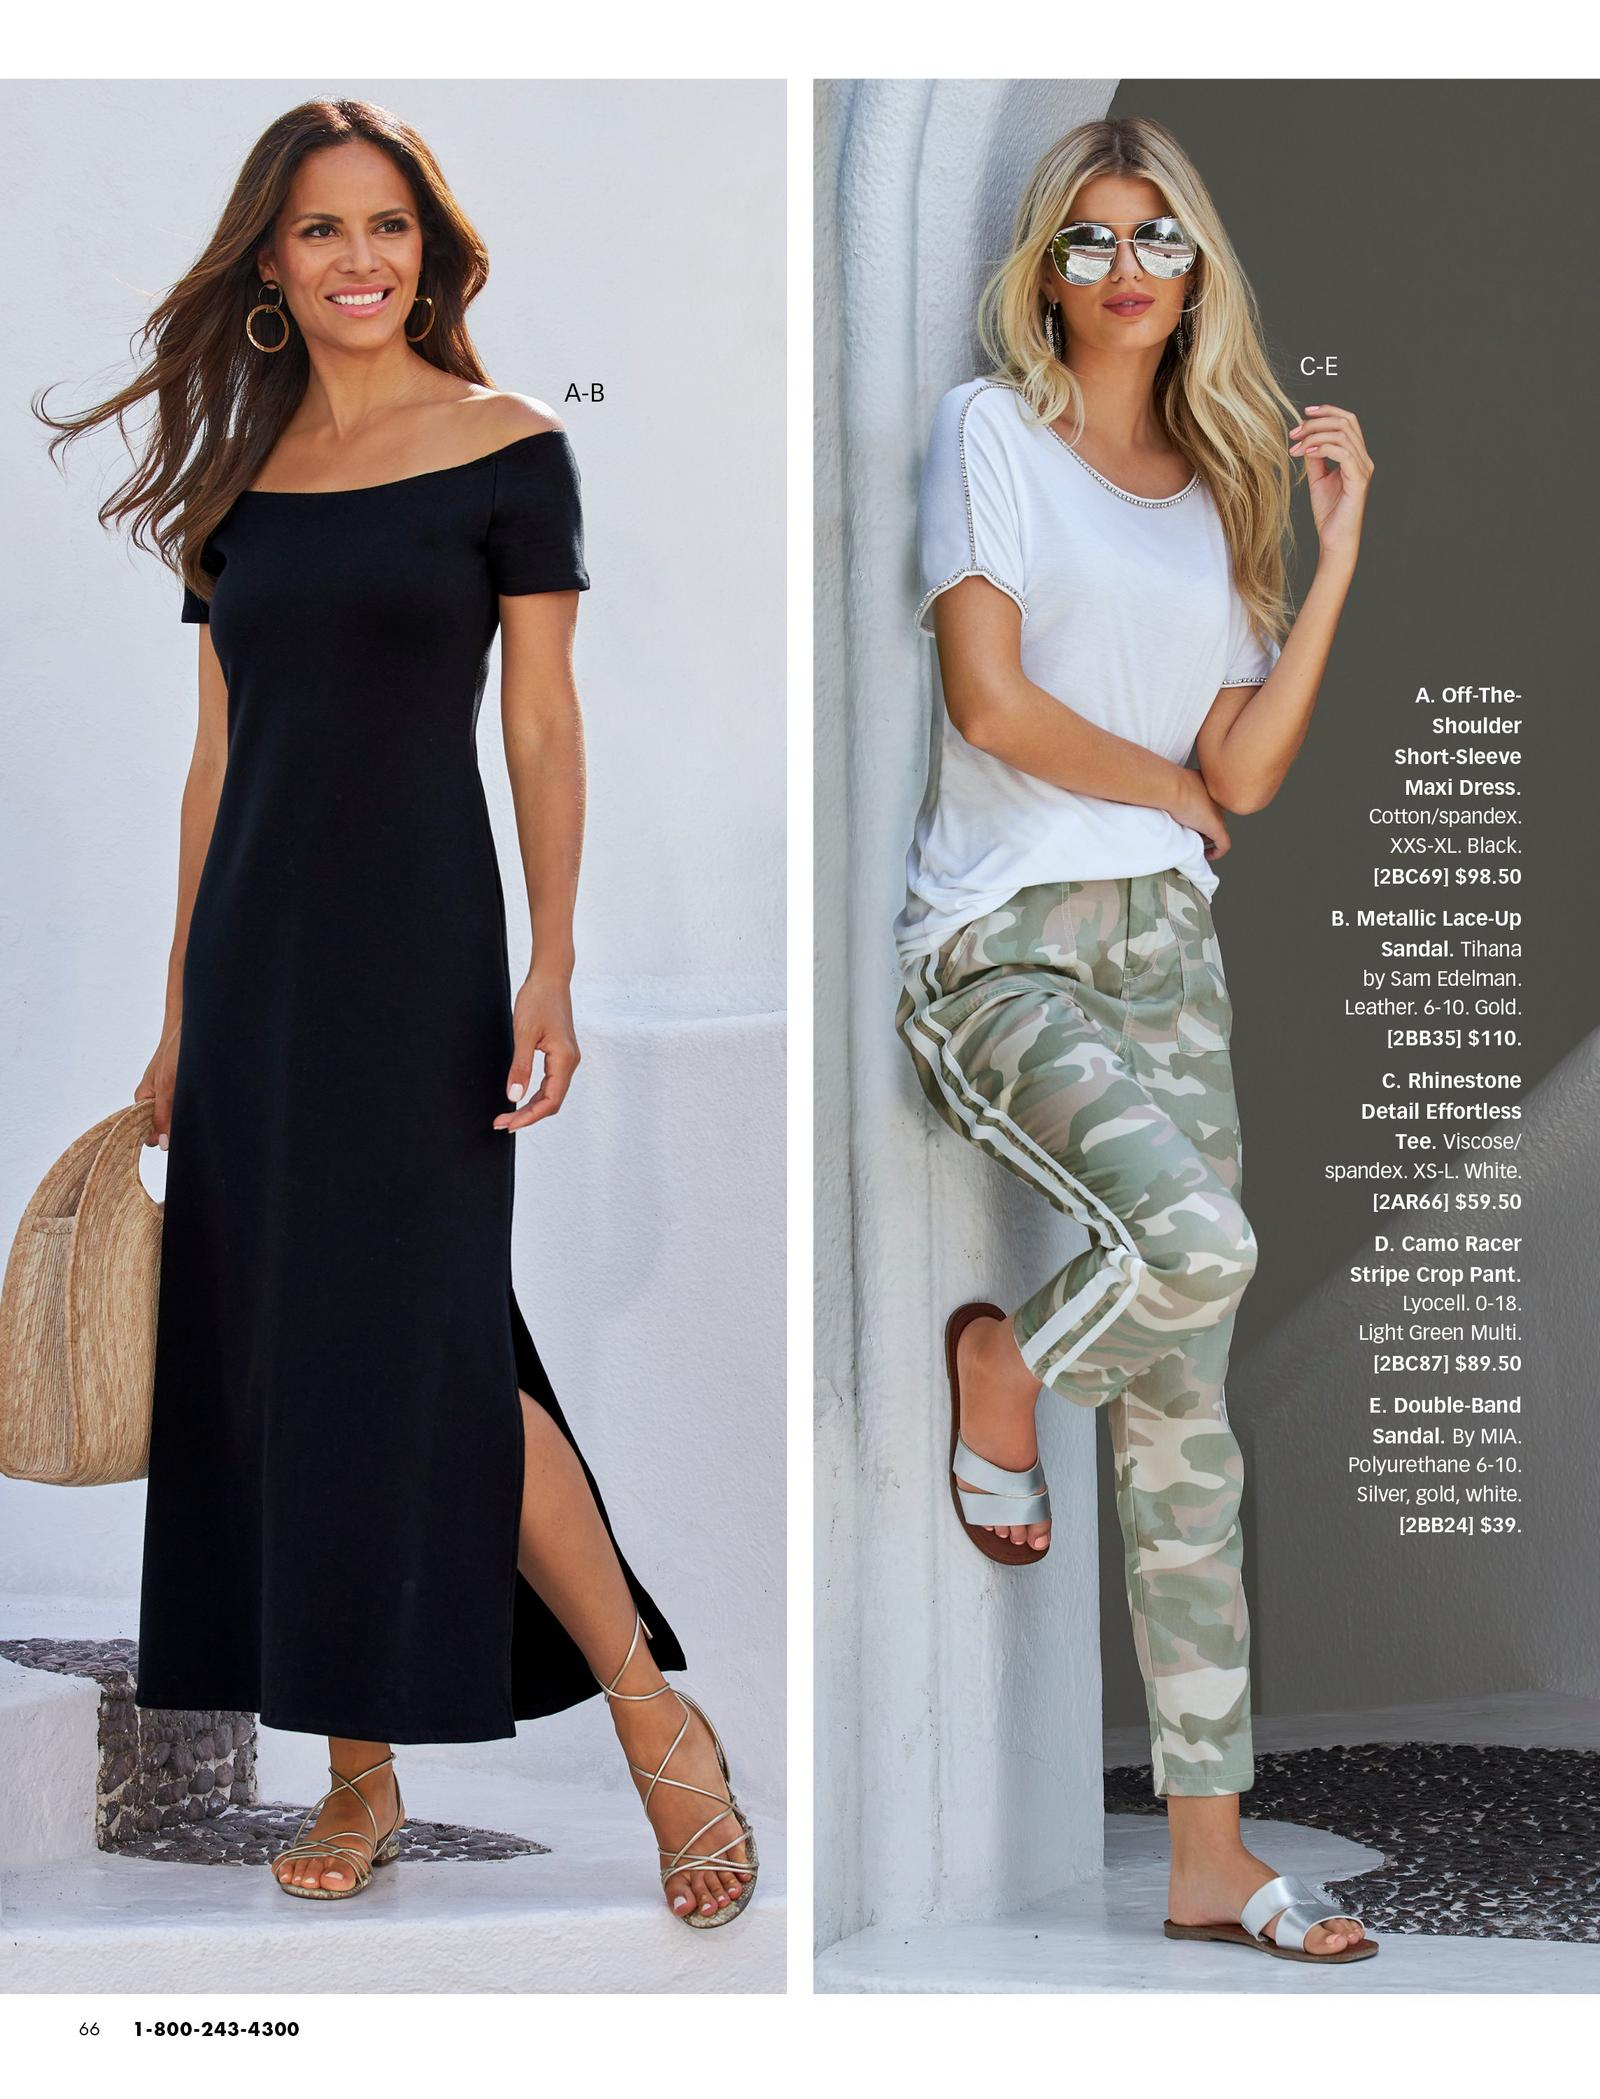 left model wearing a black off-the-shoulder maxi dress, lace up gold sandals, and straw bag. right model wearing a white embellished tee, camo racer stripe crop pants, silver aviators, and silver double-band sandals.